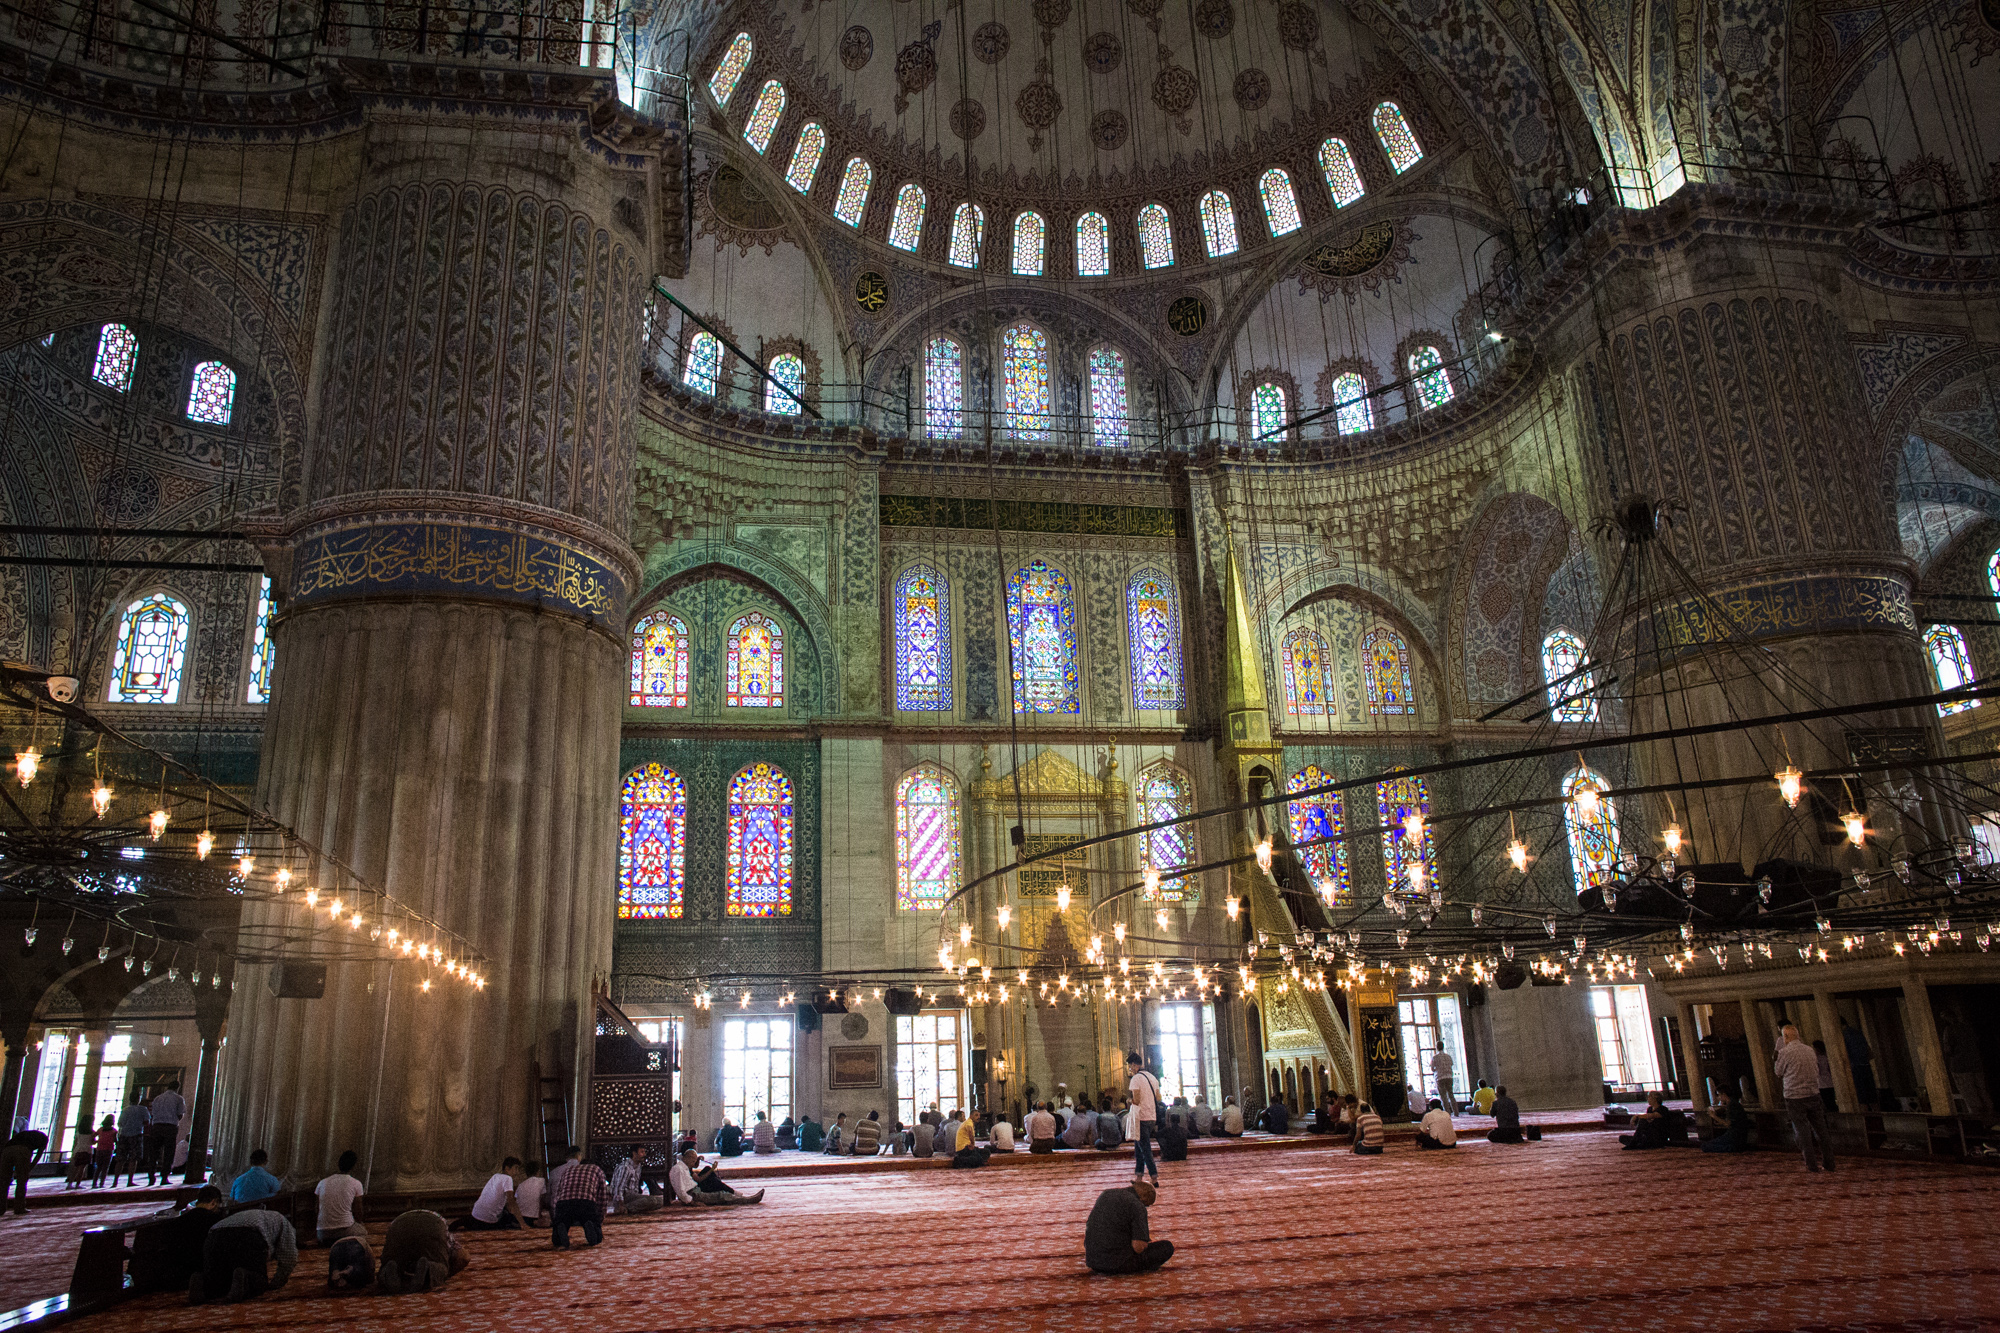 The Sultan Ahmet Mosque, Istanbul, Turkey, 2016